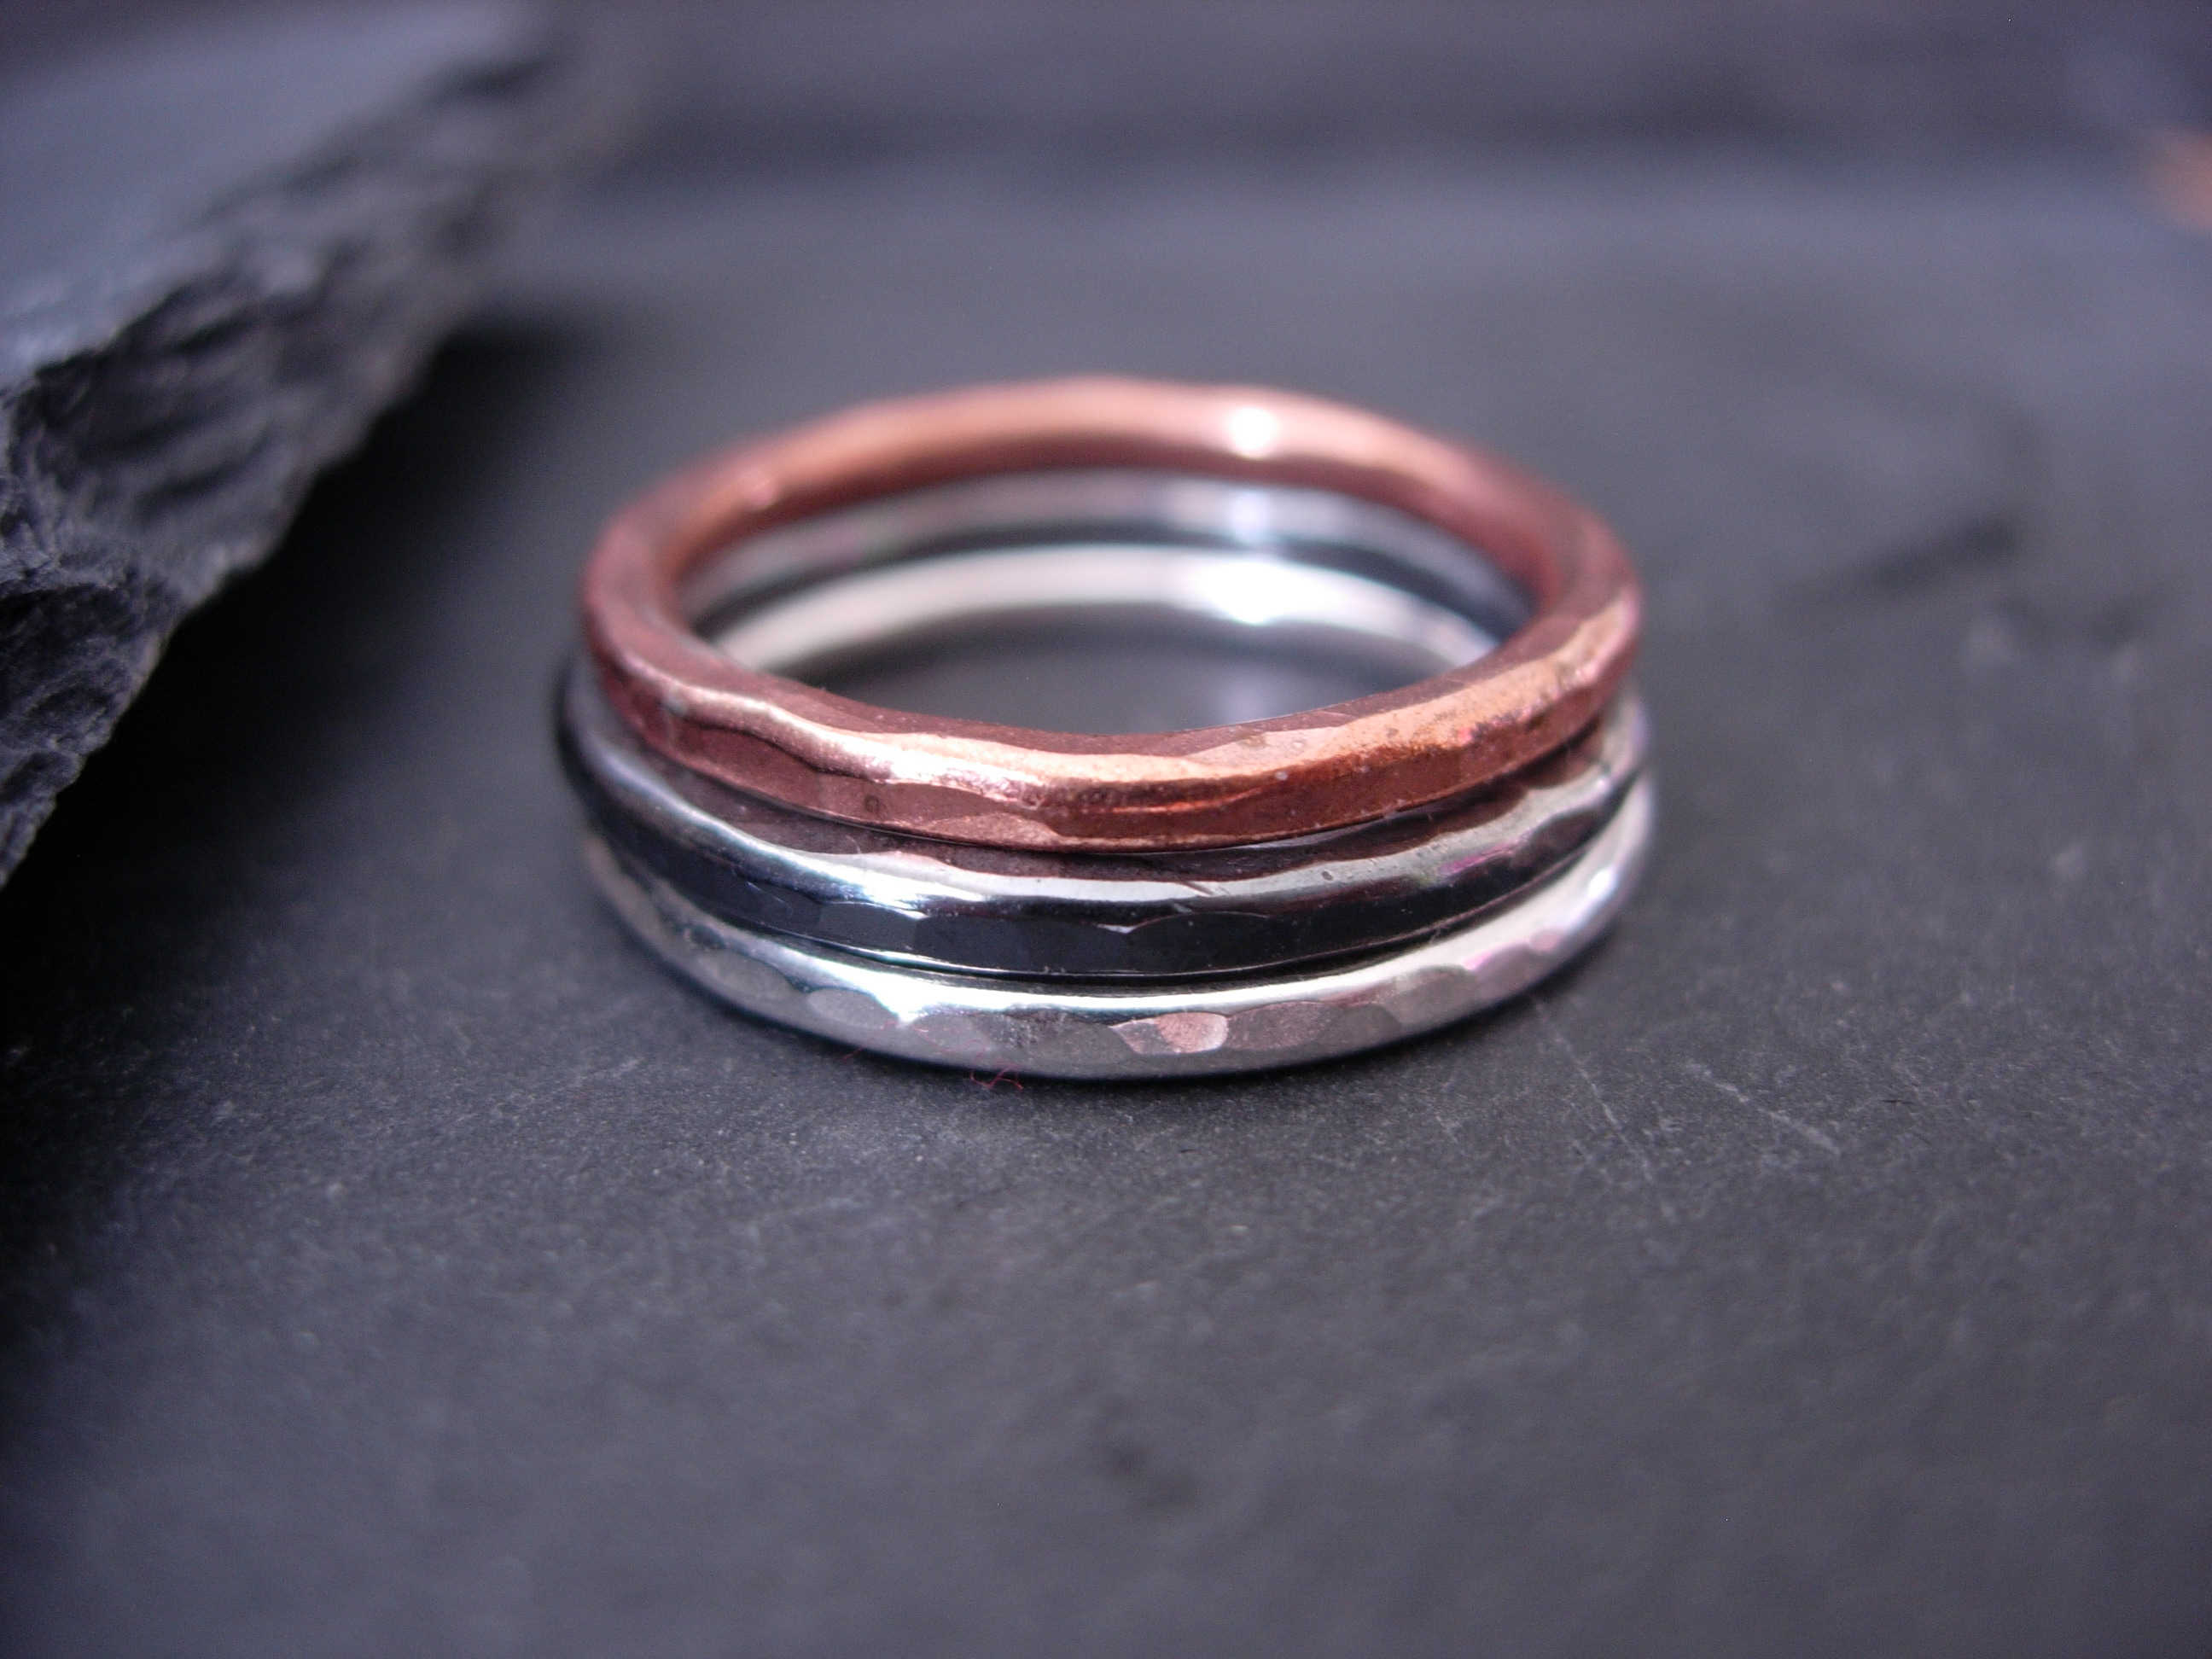 a mens cool crazyassjewelry custom rings made copper unique ring braided band buy coper wedding silver mixed metal by